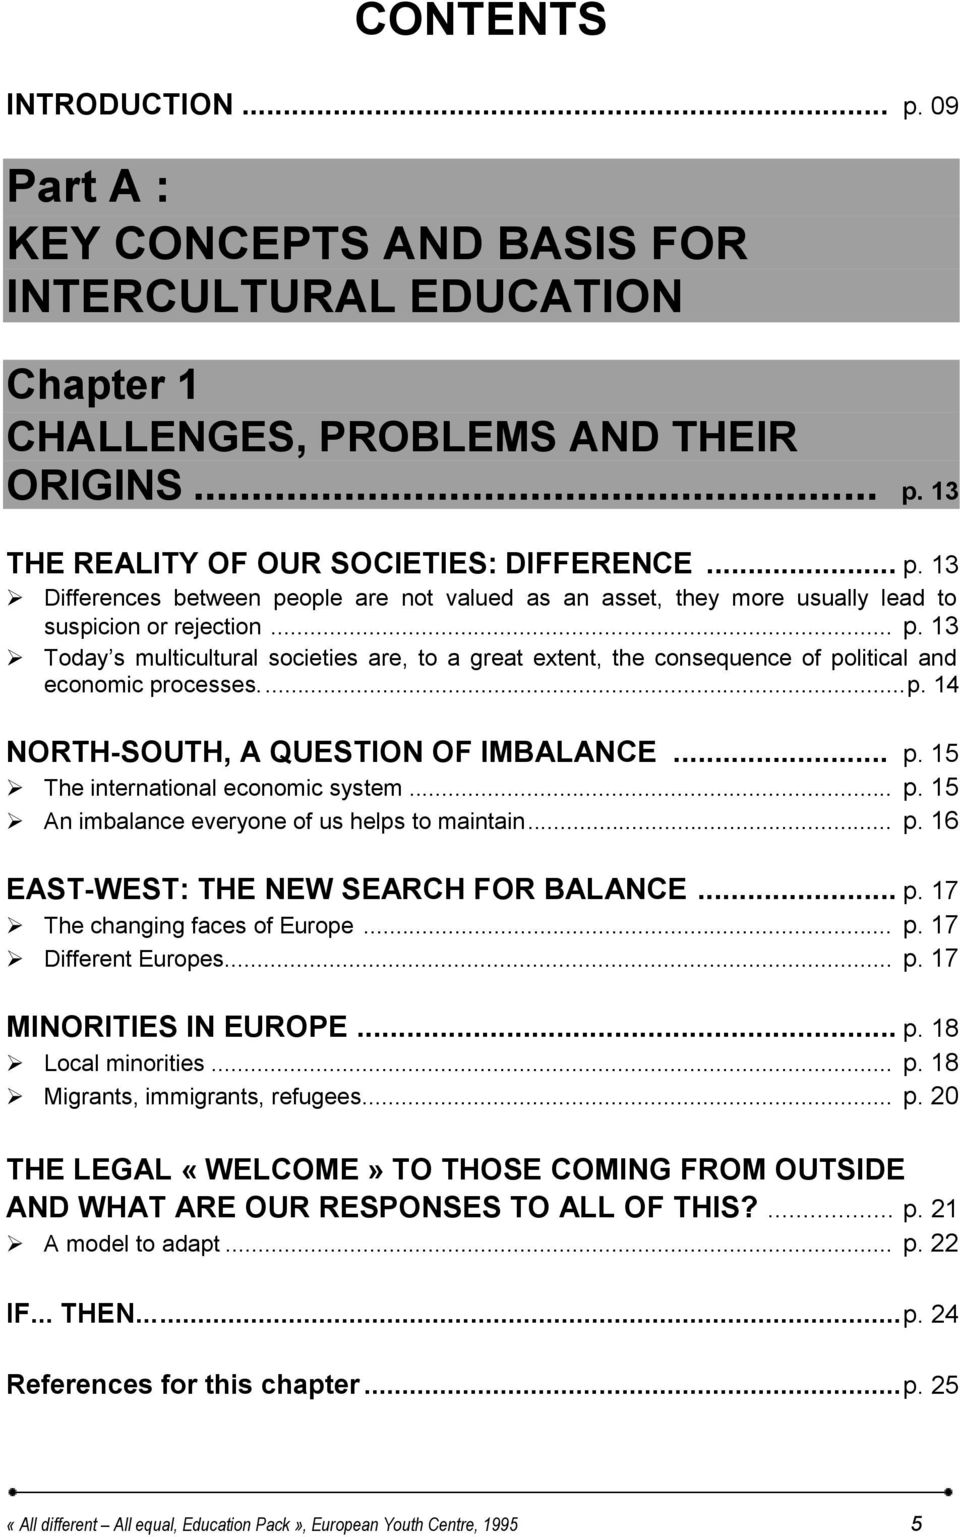 .. p. 15 An imbalance everyone of us helps to maintain... p. 16 EAST-WEST: THE NEW SEARCH FOR BALANCE... p. 17 The changing faces of Europe... p. 17 Different Europes... p. 17 MINORITIES IN EUROPE... p. 18 Local minorities.